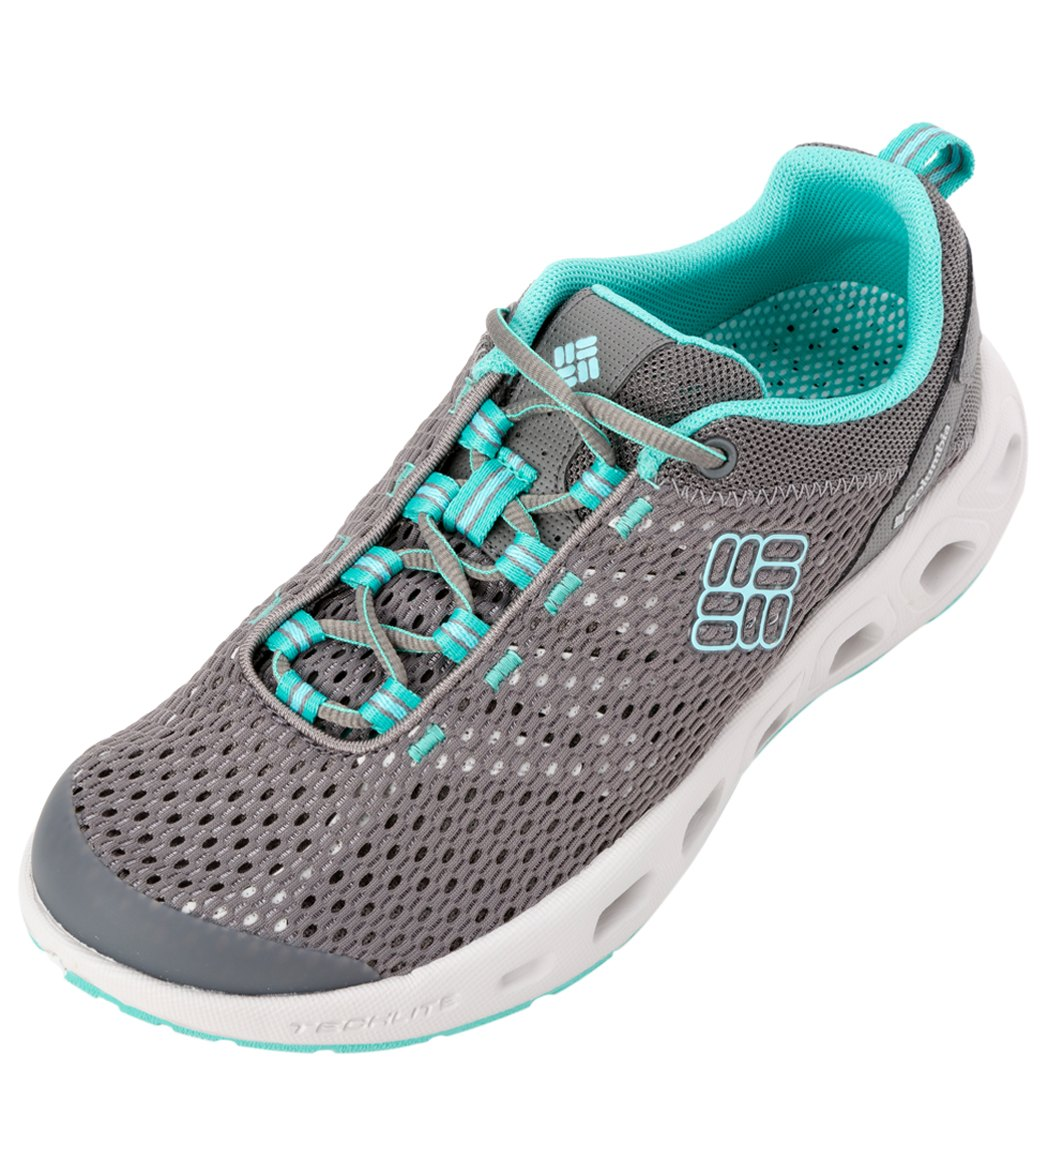 13cfd9180c9d Columbia Women s Drainmaker III Water Shoes at SwimOutlet.com ...